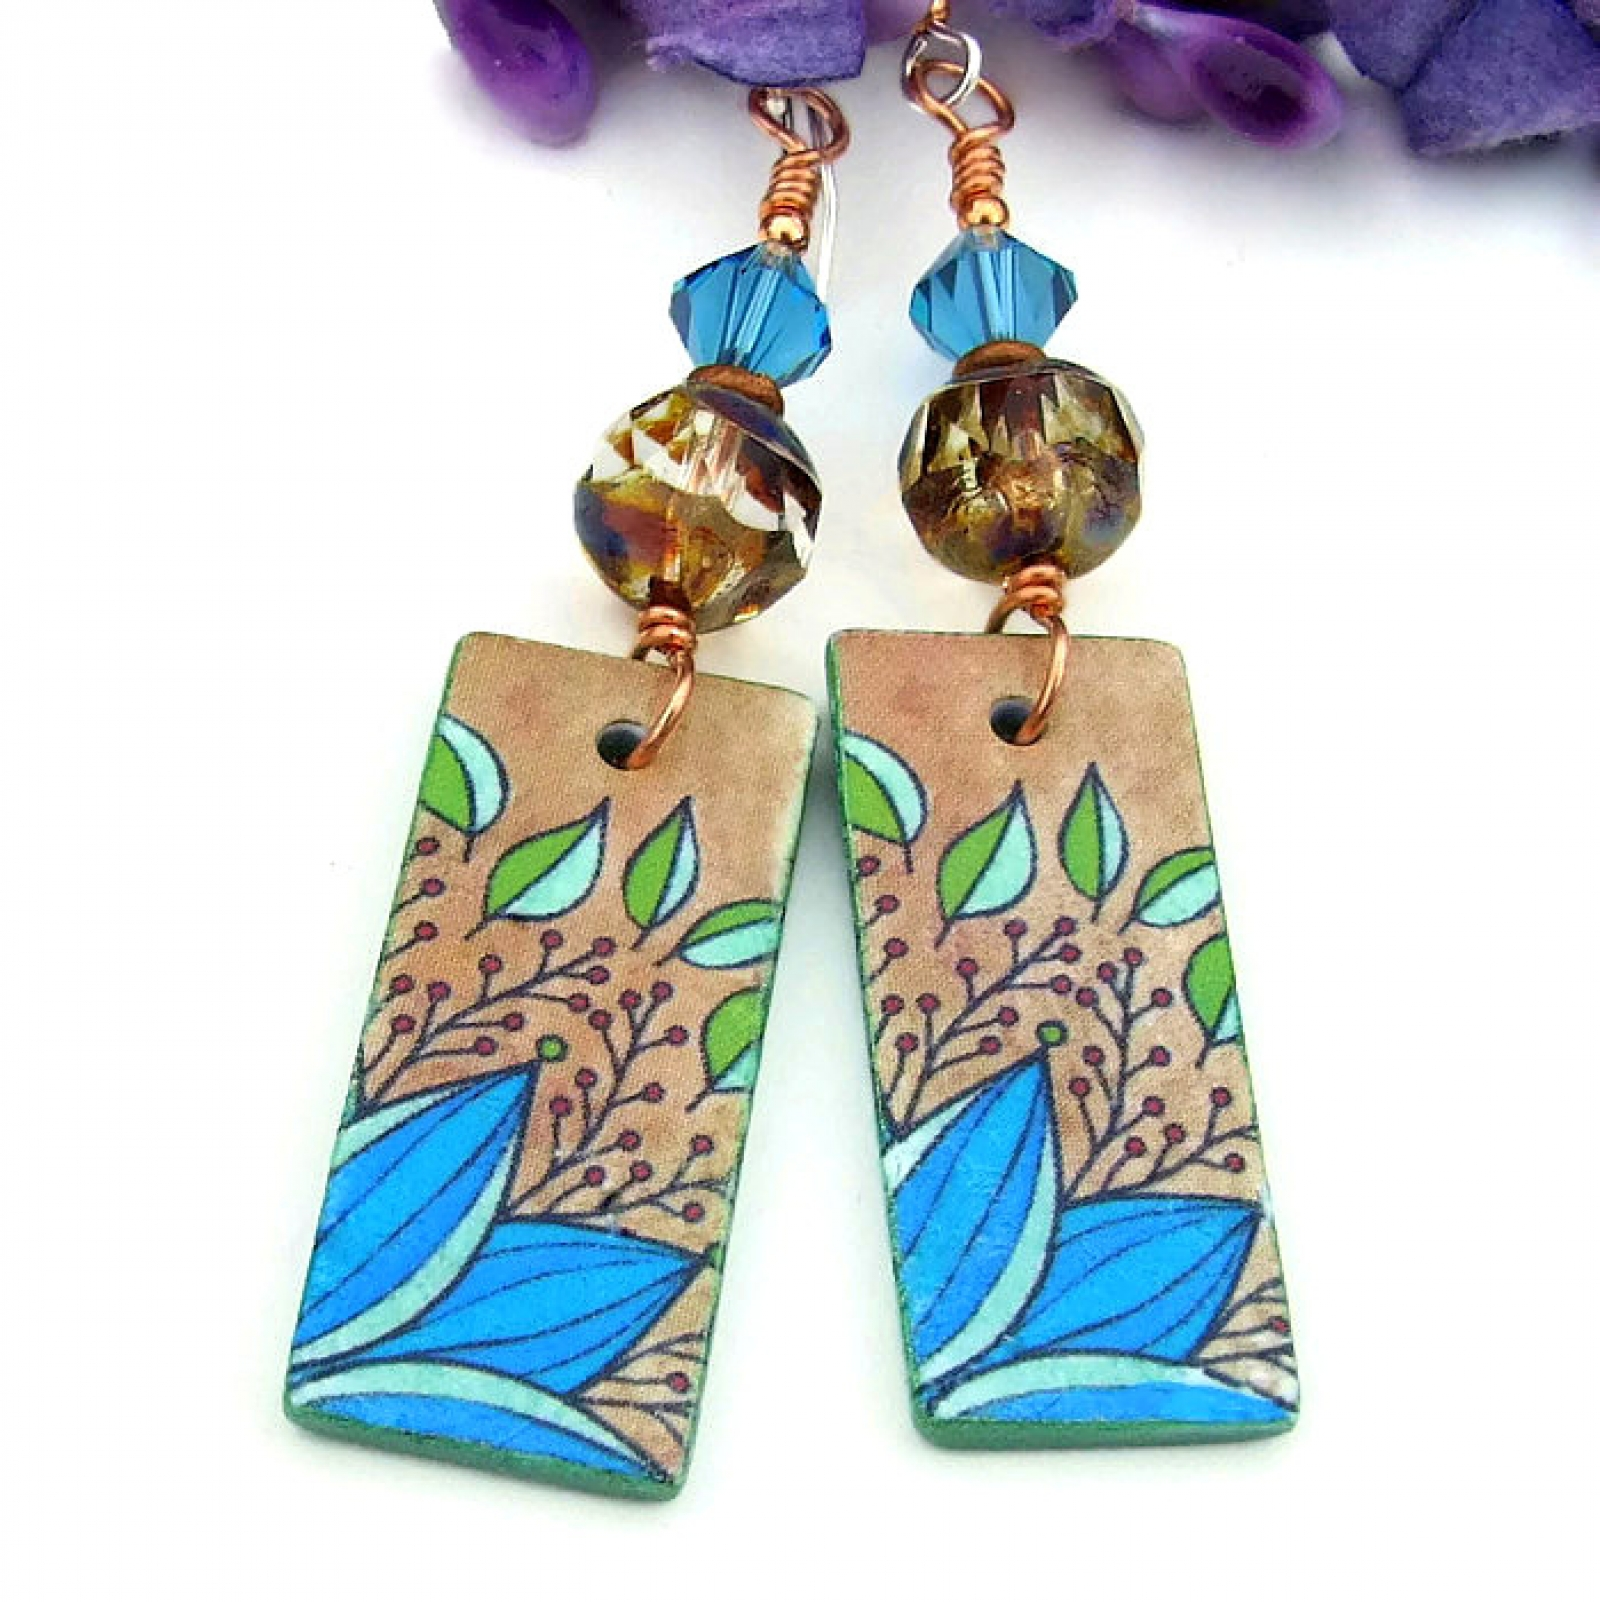 4dcdf31ec Turquoise Tan Leaf Foliage Earrings, Polymer Clay Handmade Jewelry ...